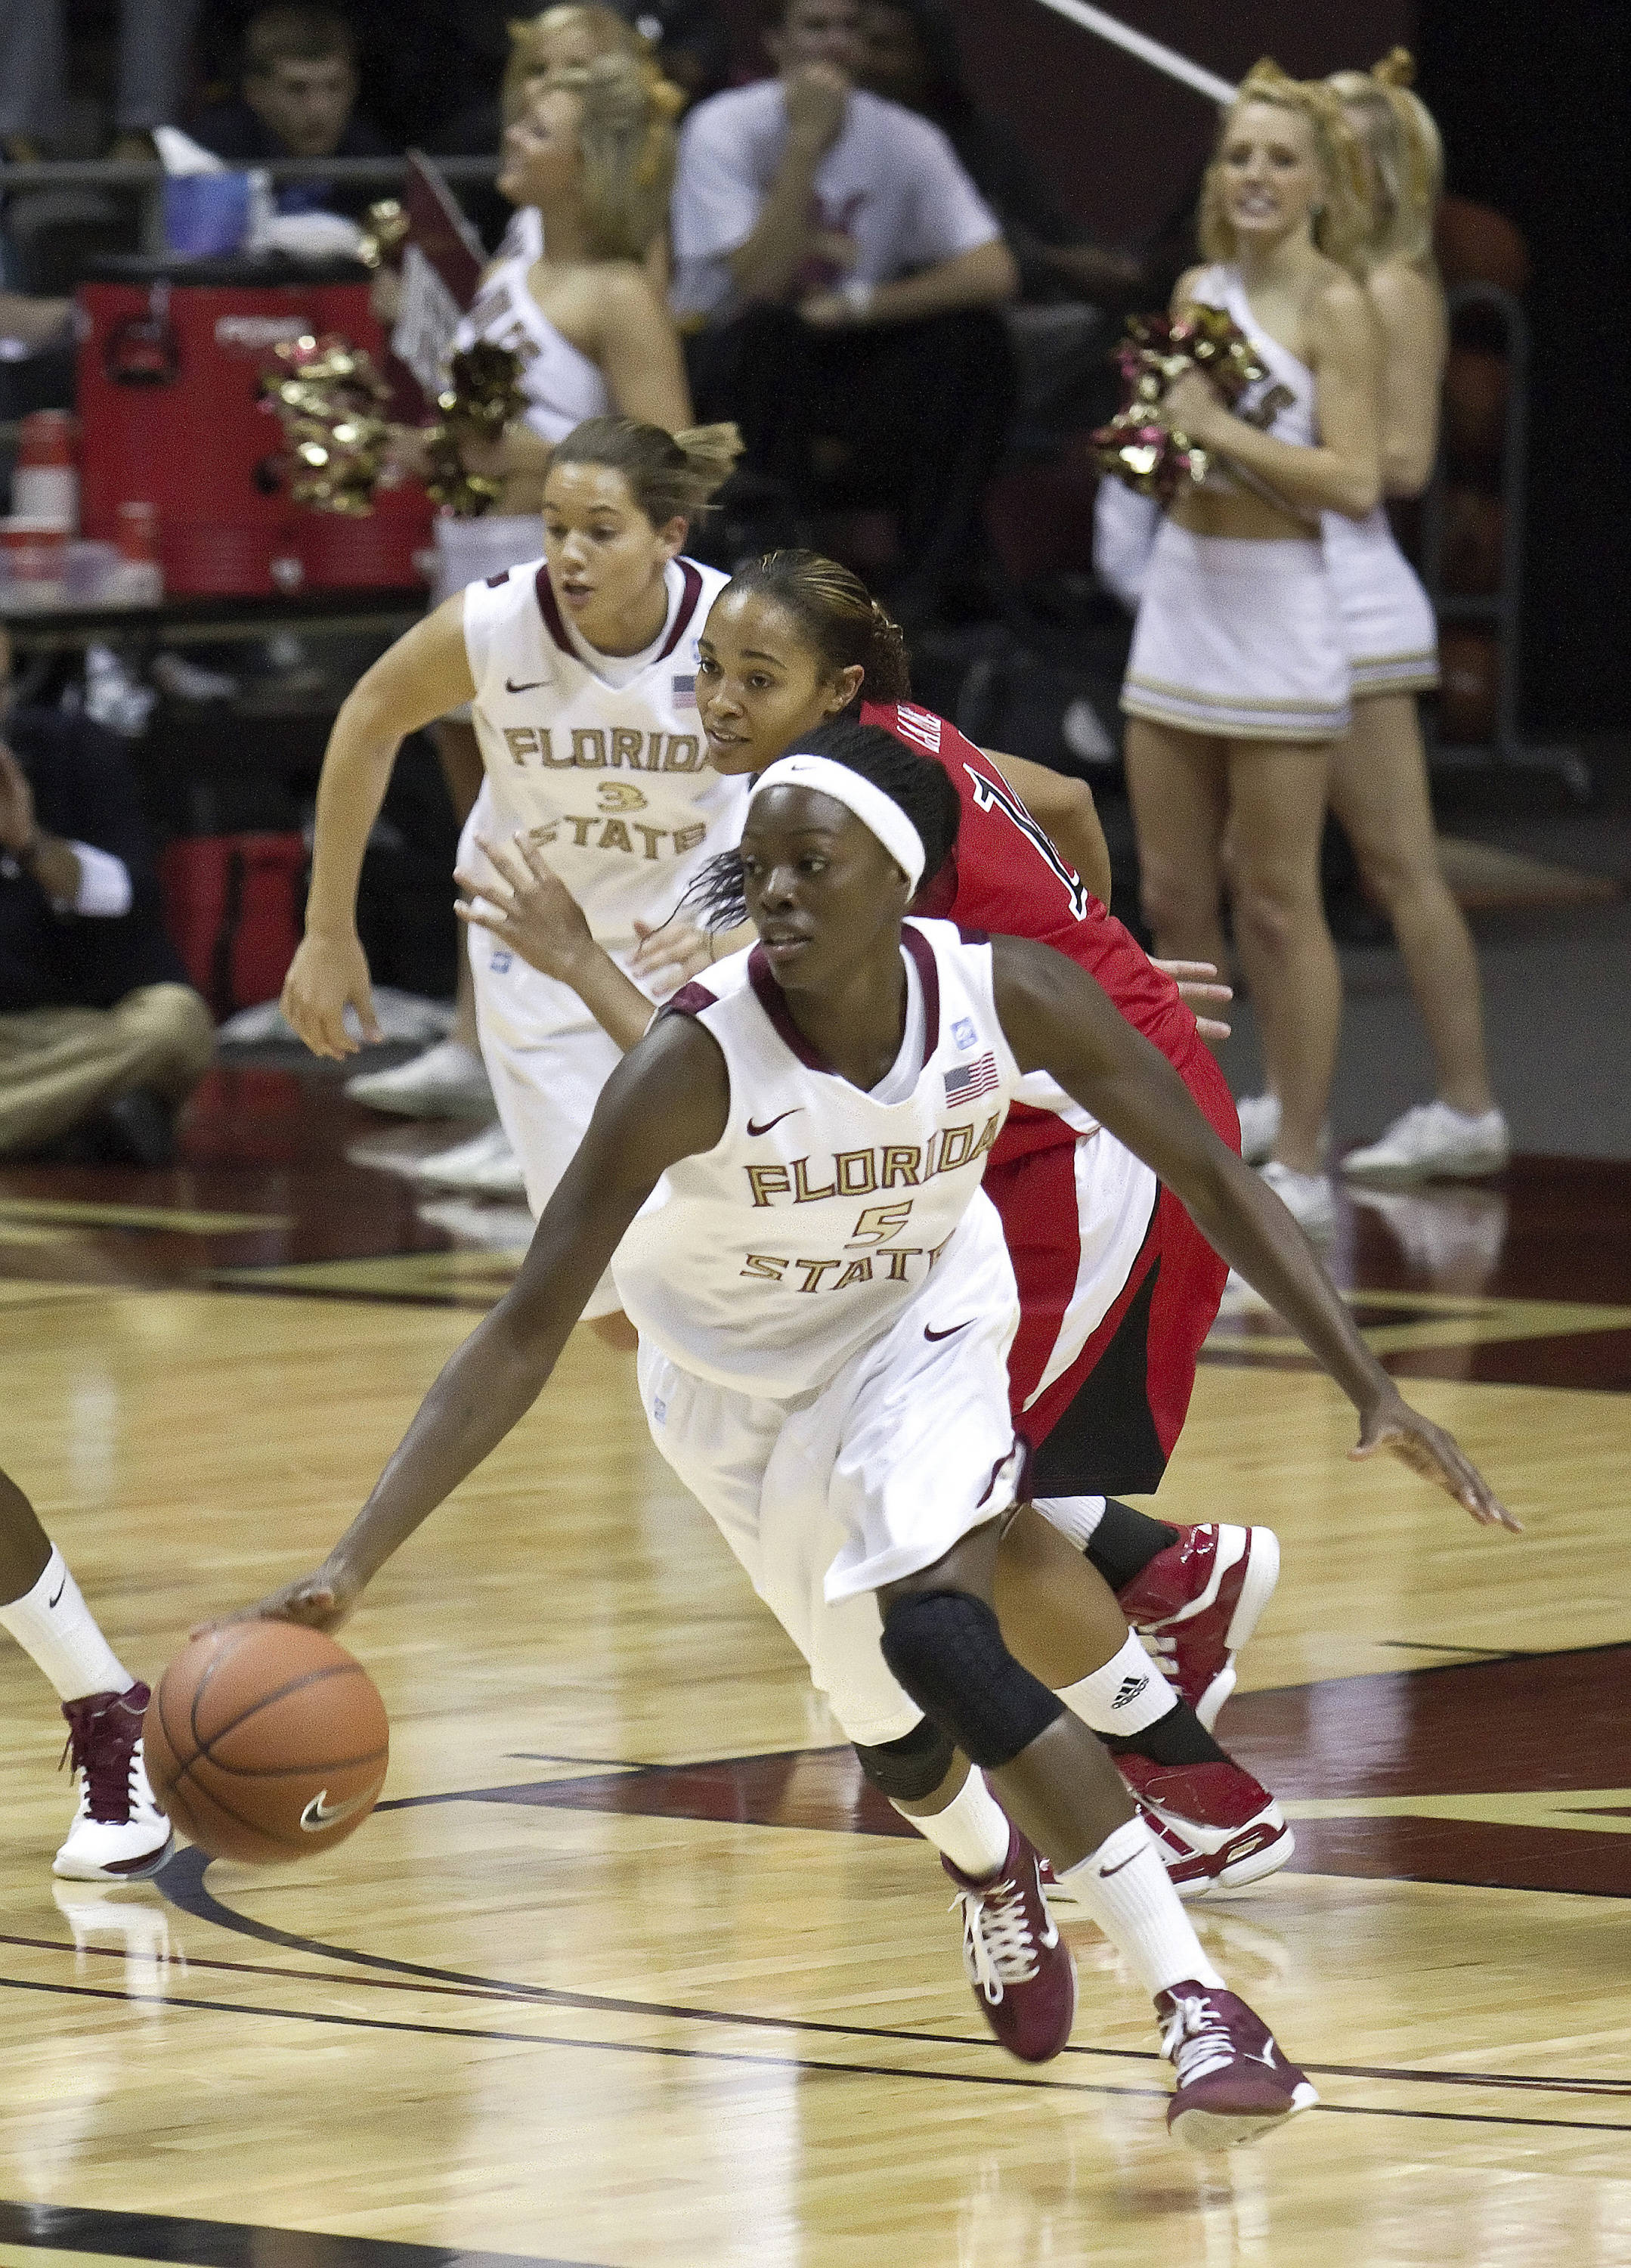 FSU vs Jacksonville State - 12/12/10 - Christian Hunnicutt (5), Alexa Deluzio (3)#$%^Photo by Steve Musco